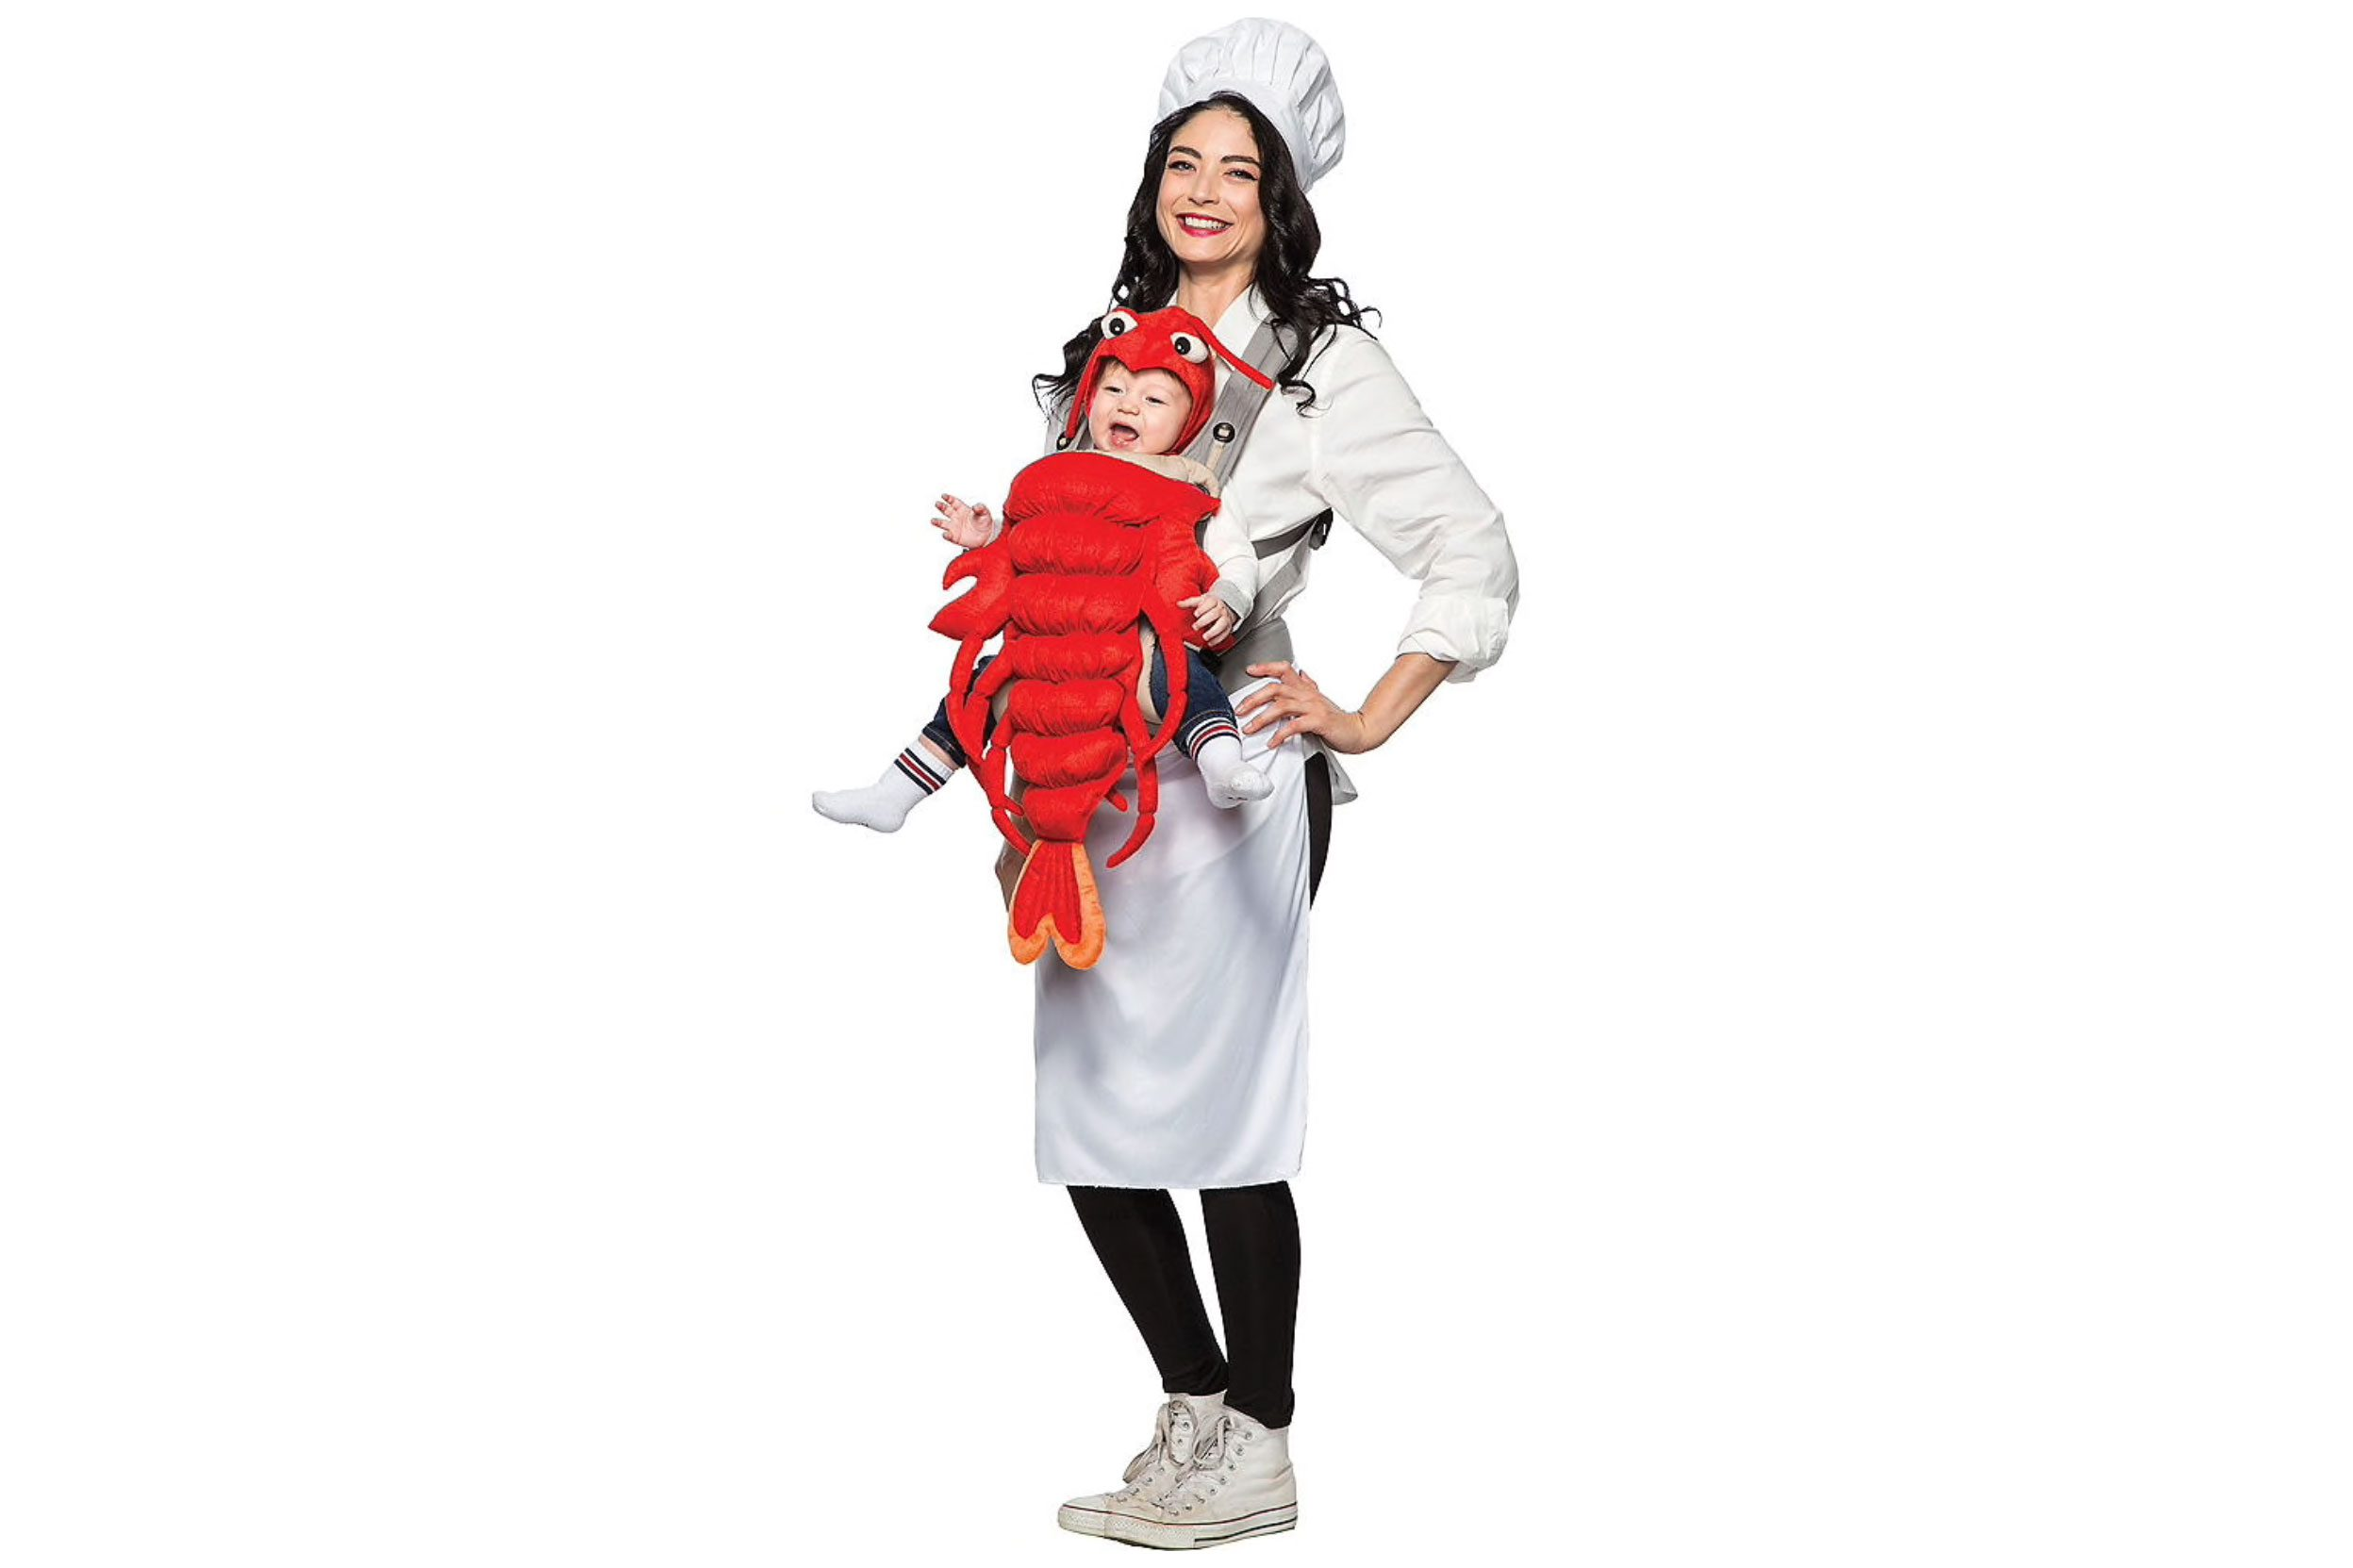 chef and lobster funny halloween costume